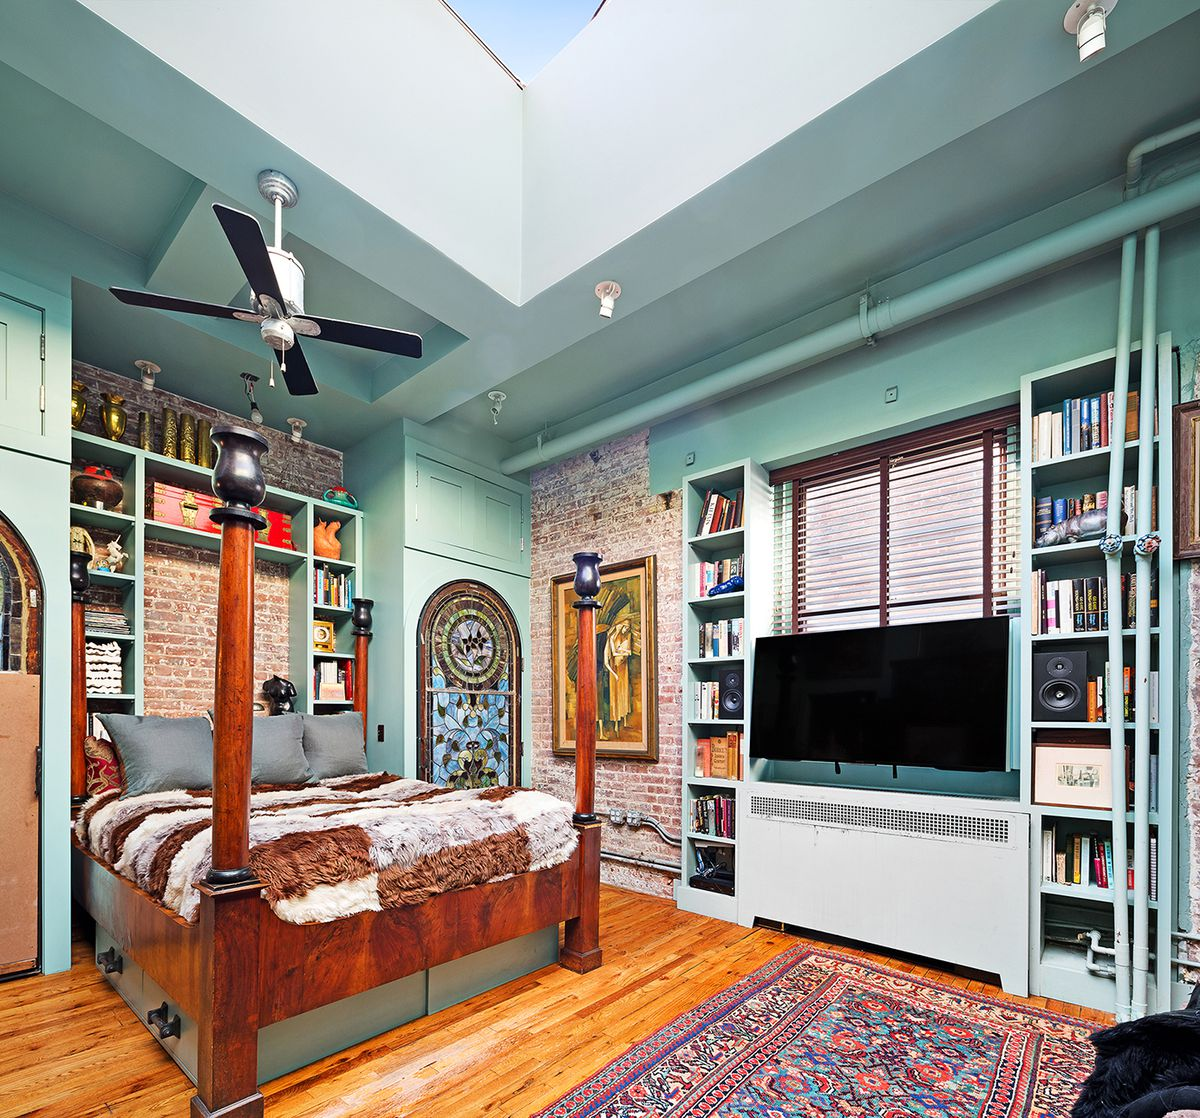 A bedroom with a small bed, exposed brick, and blue shelves surrounding it.